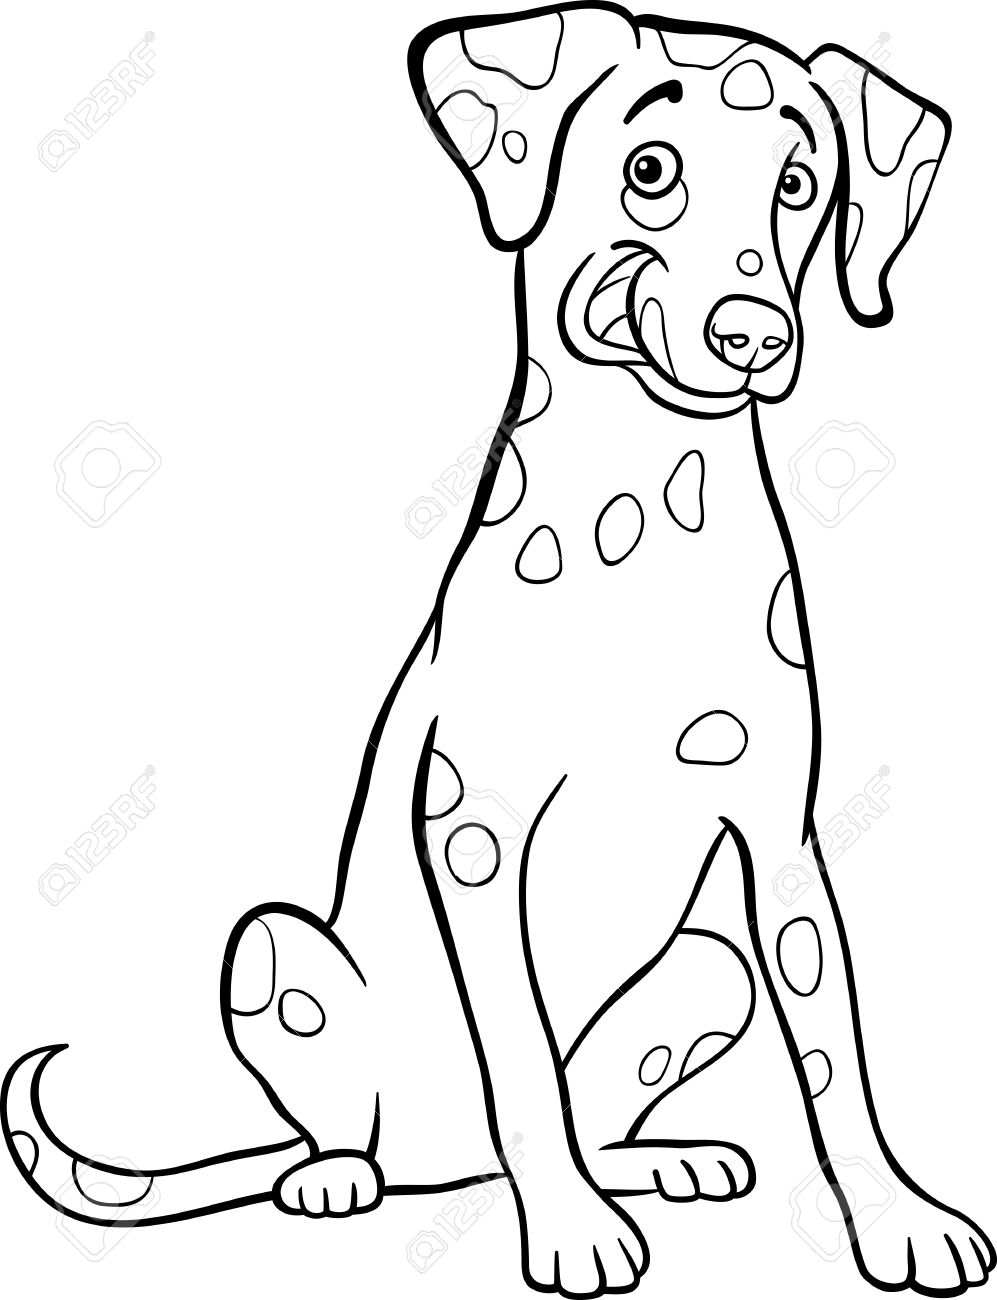 997x1300 Dalmatian Clipart Black And White